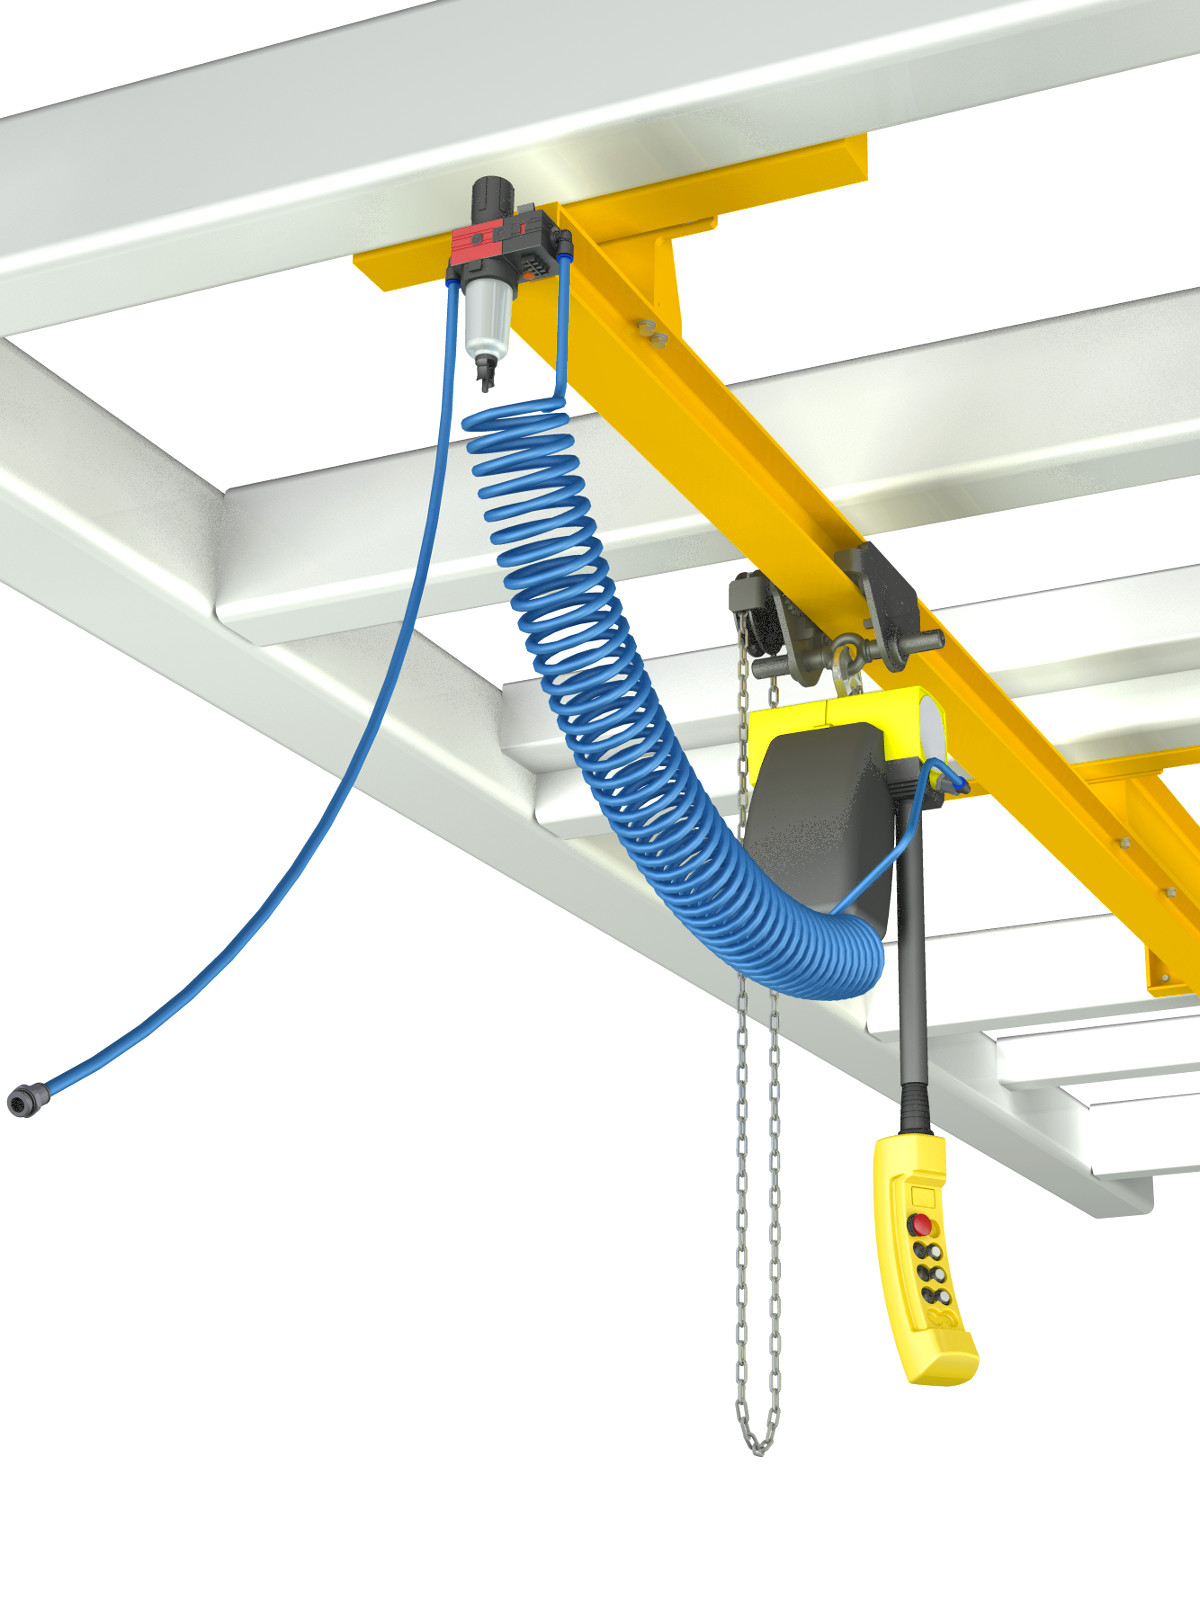 Overhead Crane Autocad Drawing : Bridge crane cad project download d inventor models